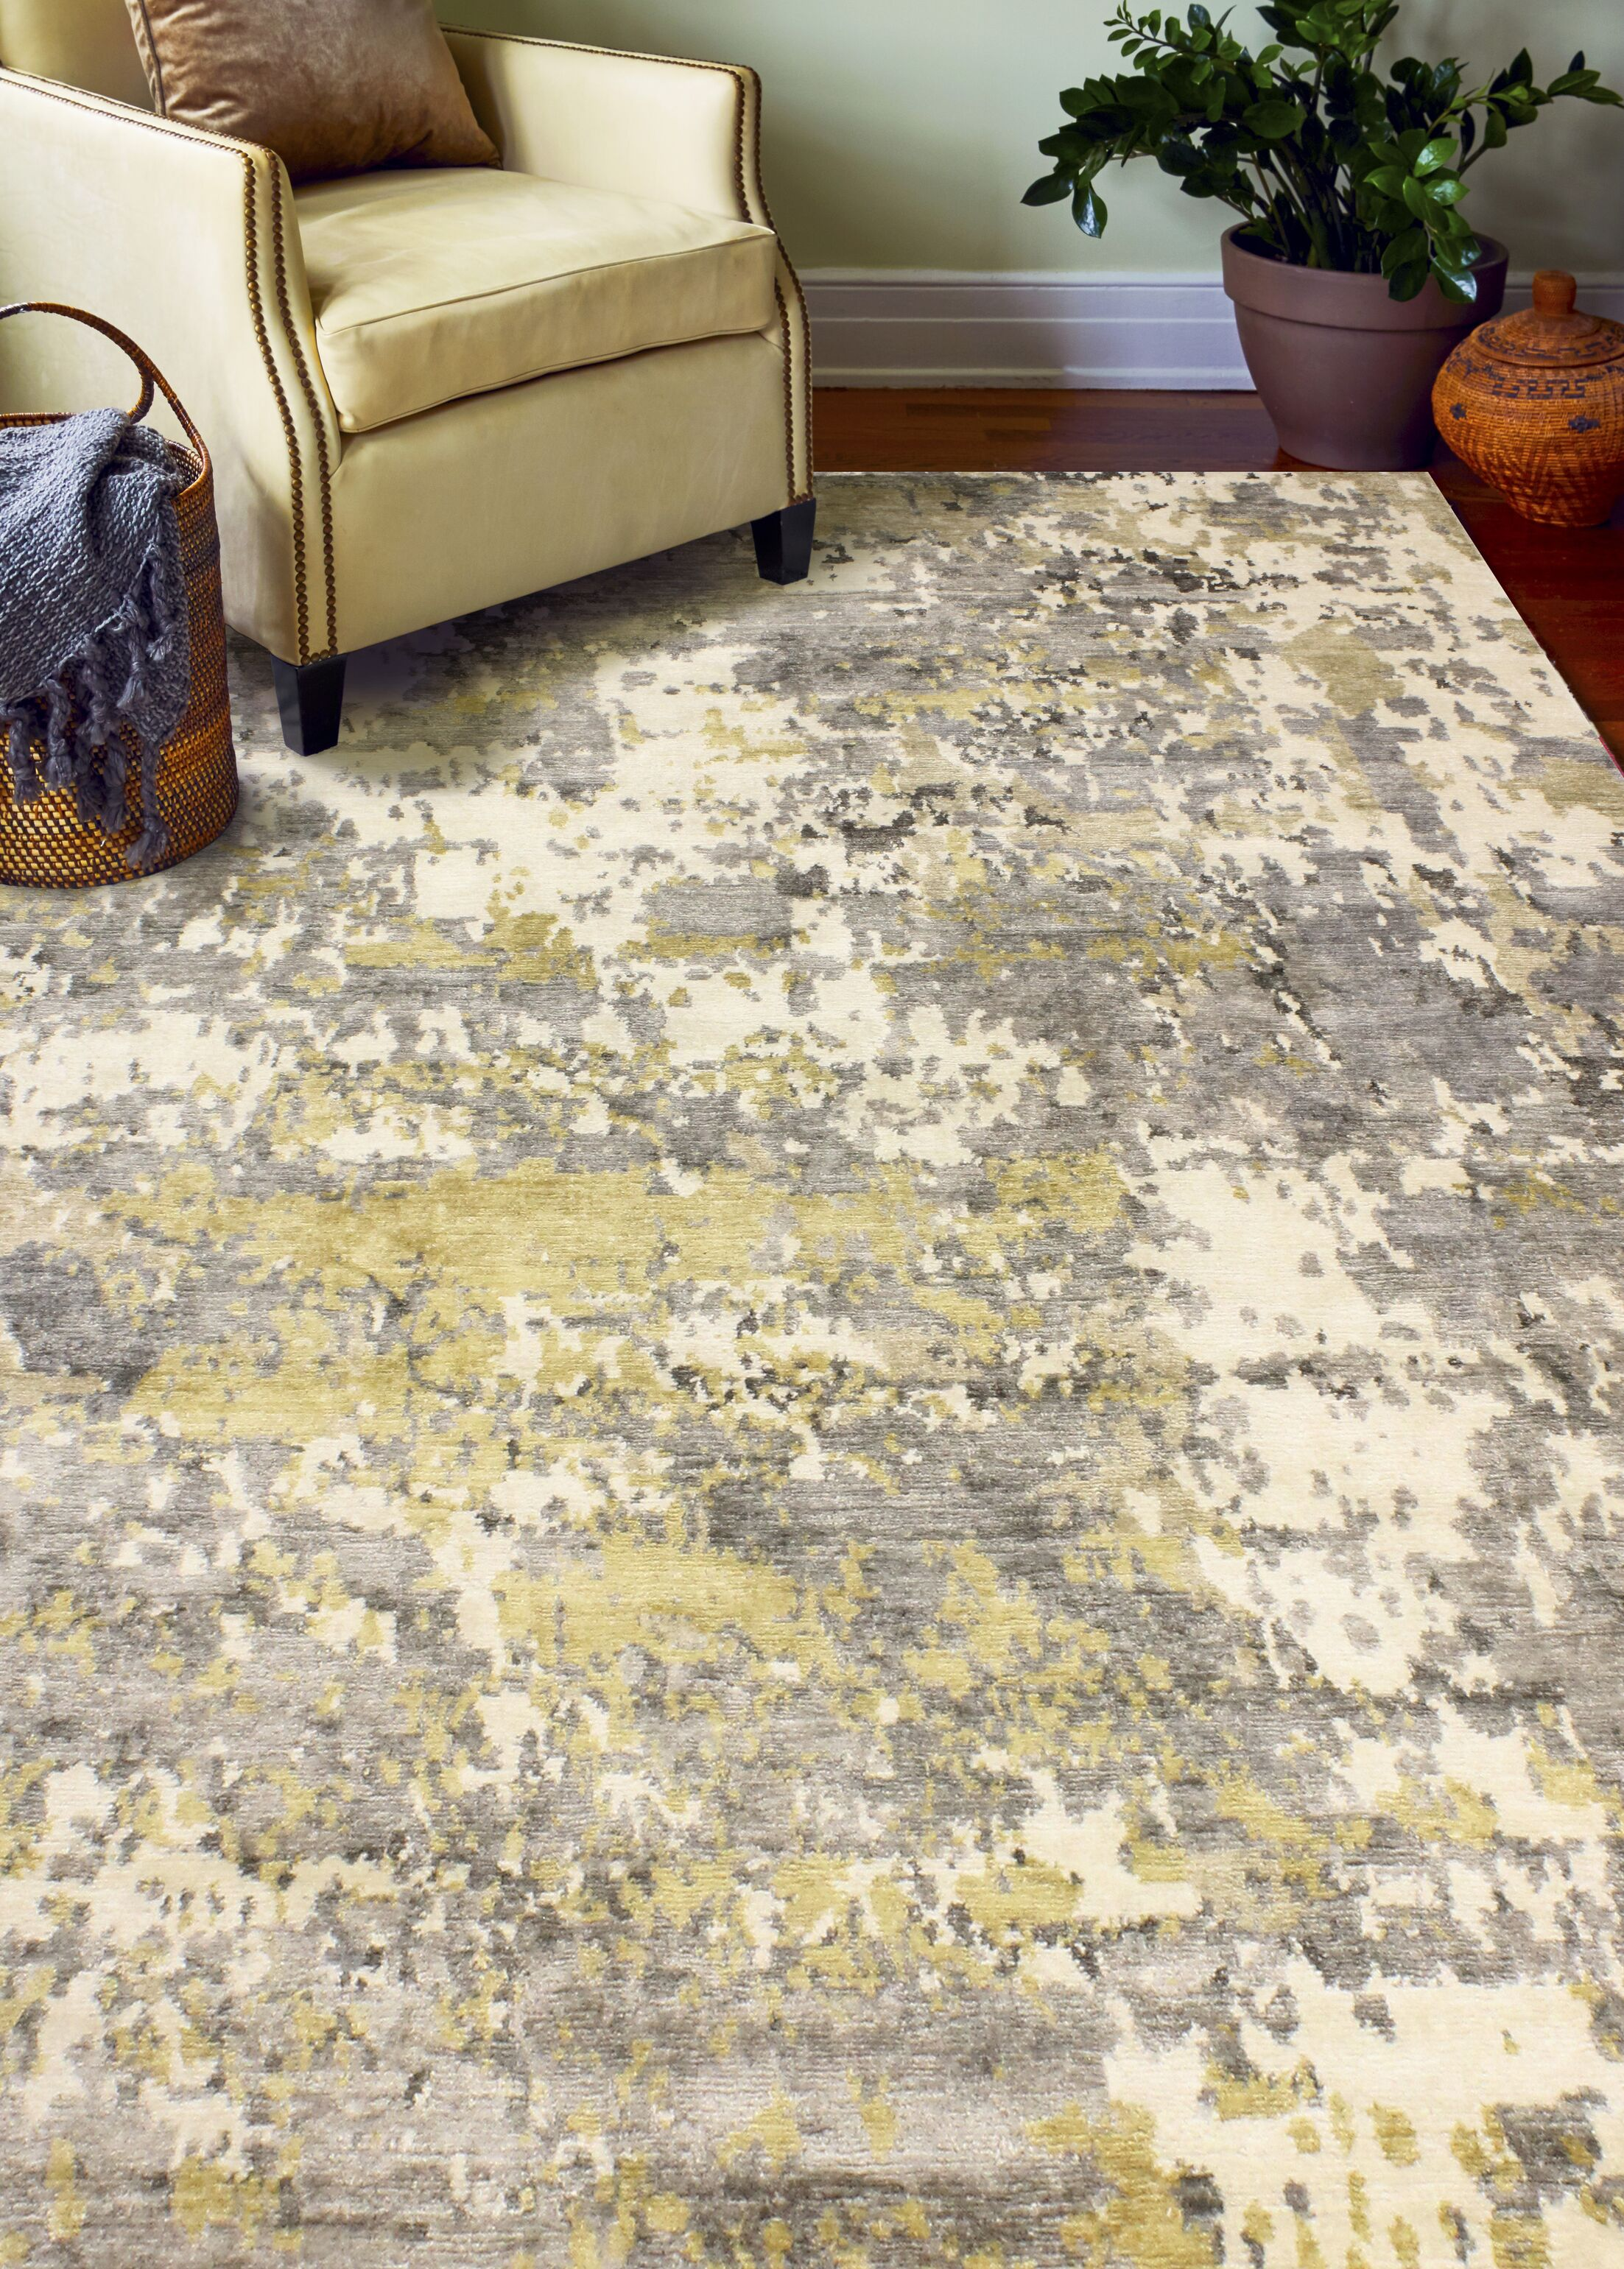 Darlene Hand-Knotted Ivory/Gray Area Rug Rug Size: 10' x 14'